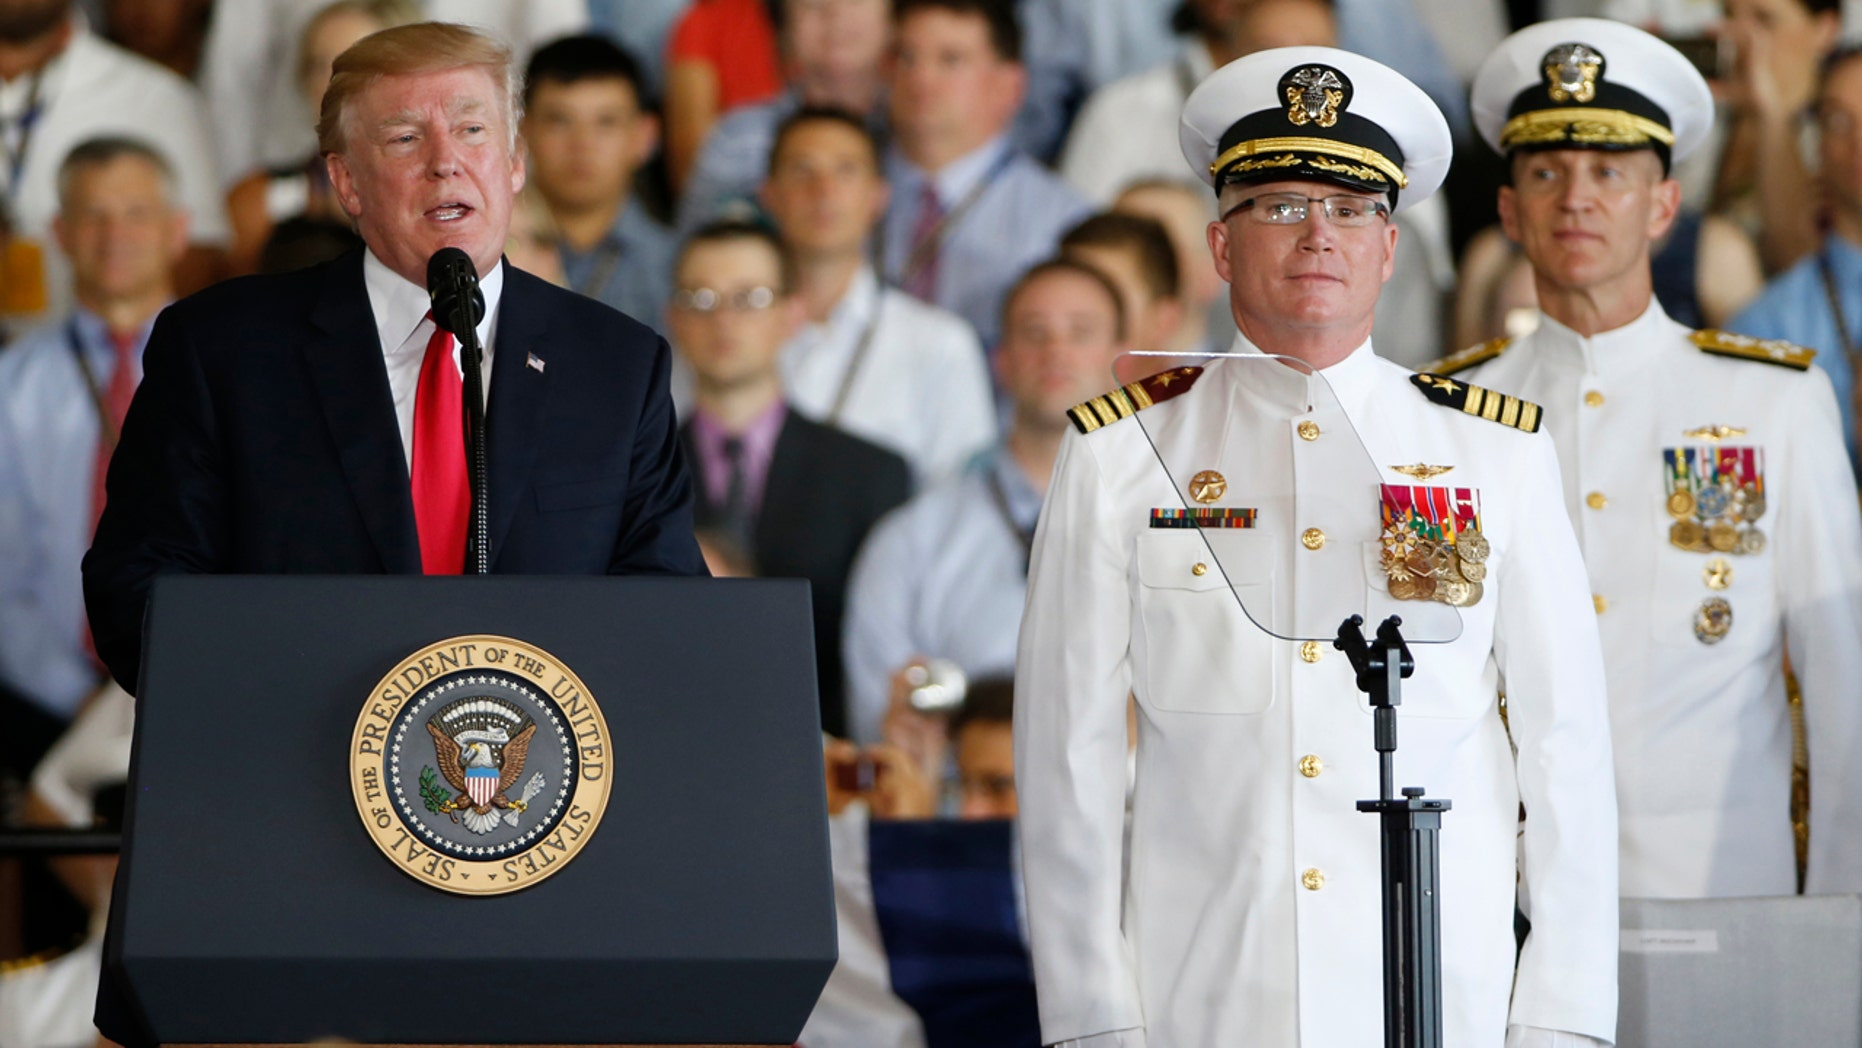 President Donald Trump, left, puts the USS Gerald R Ford into commission as Ships commander Capt. Richard McCormack, front right, listens in Norfolk, Va. Saturday.